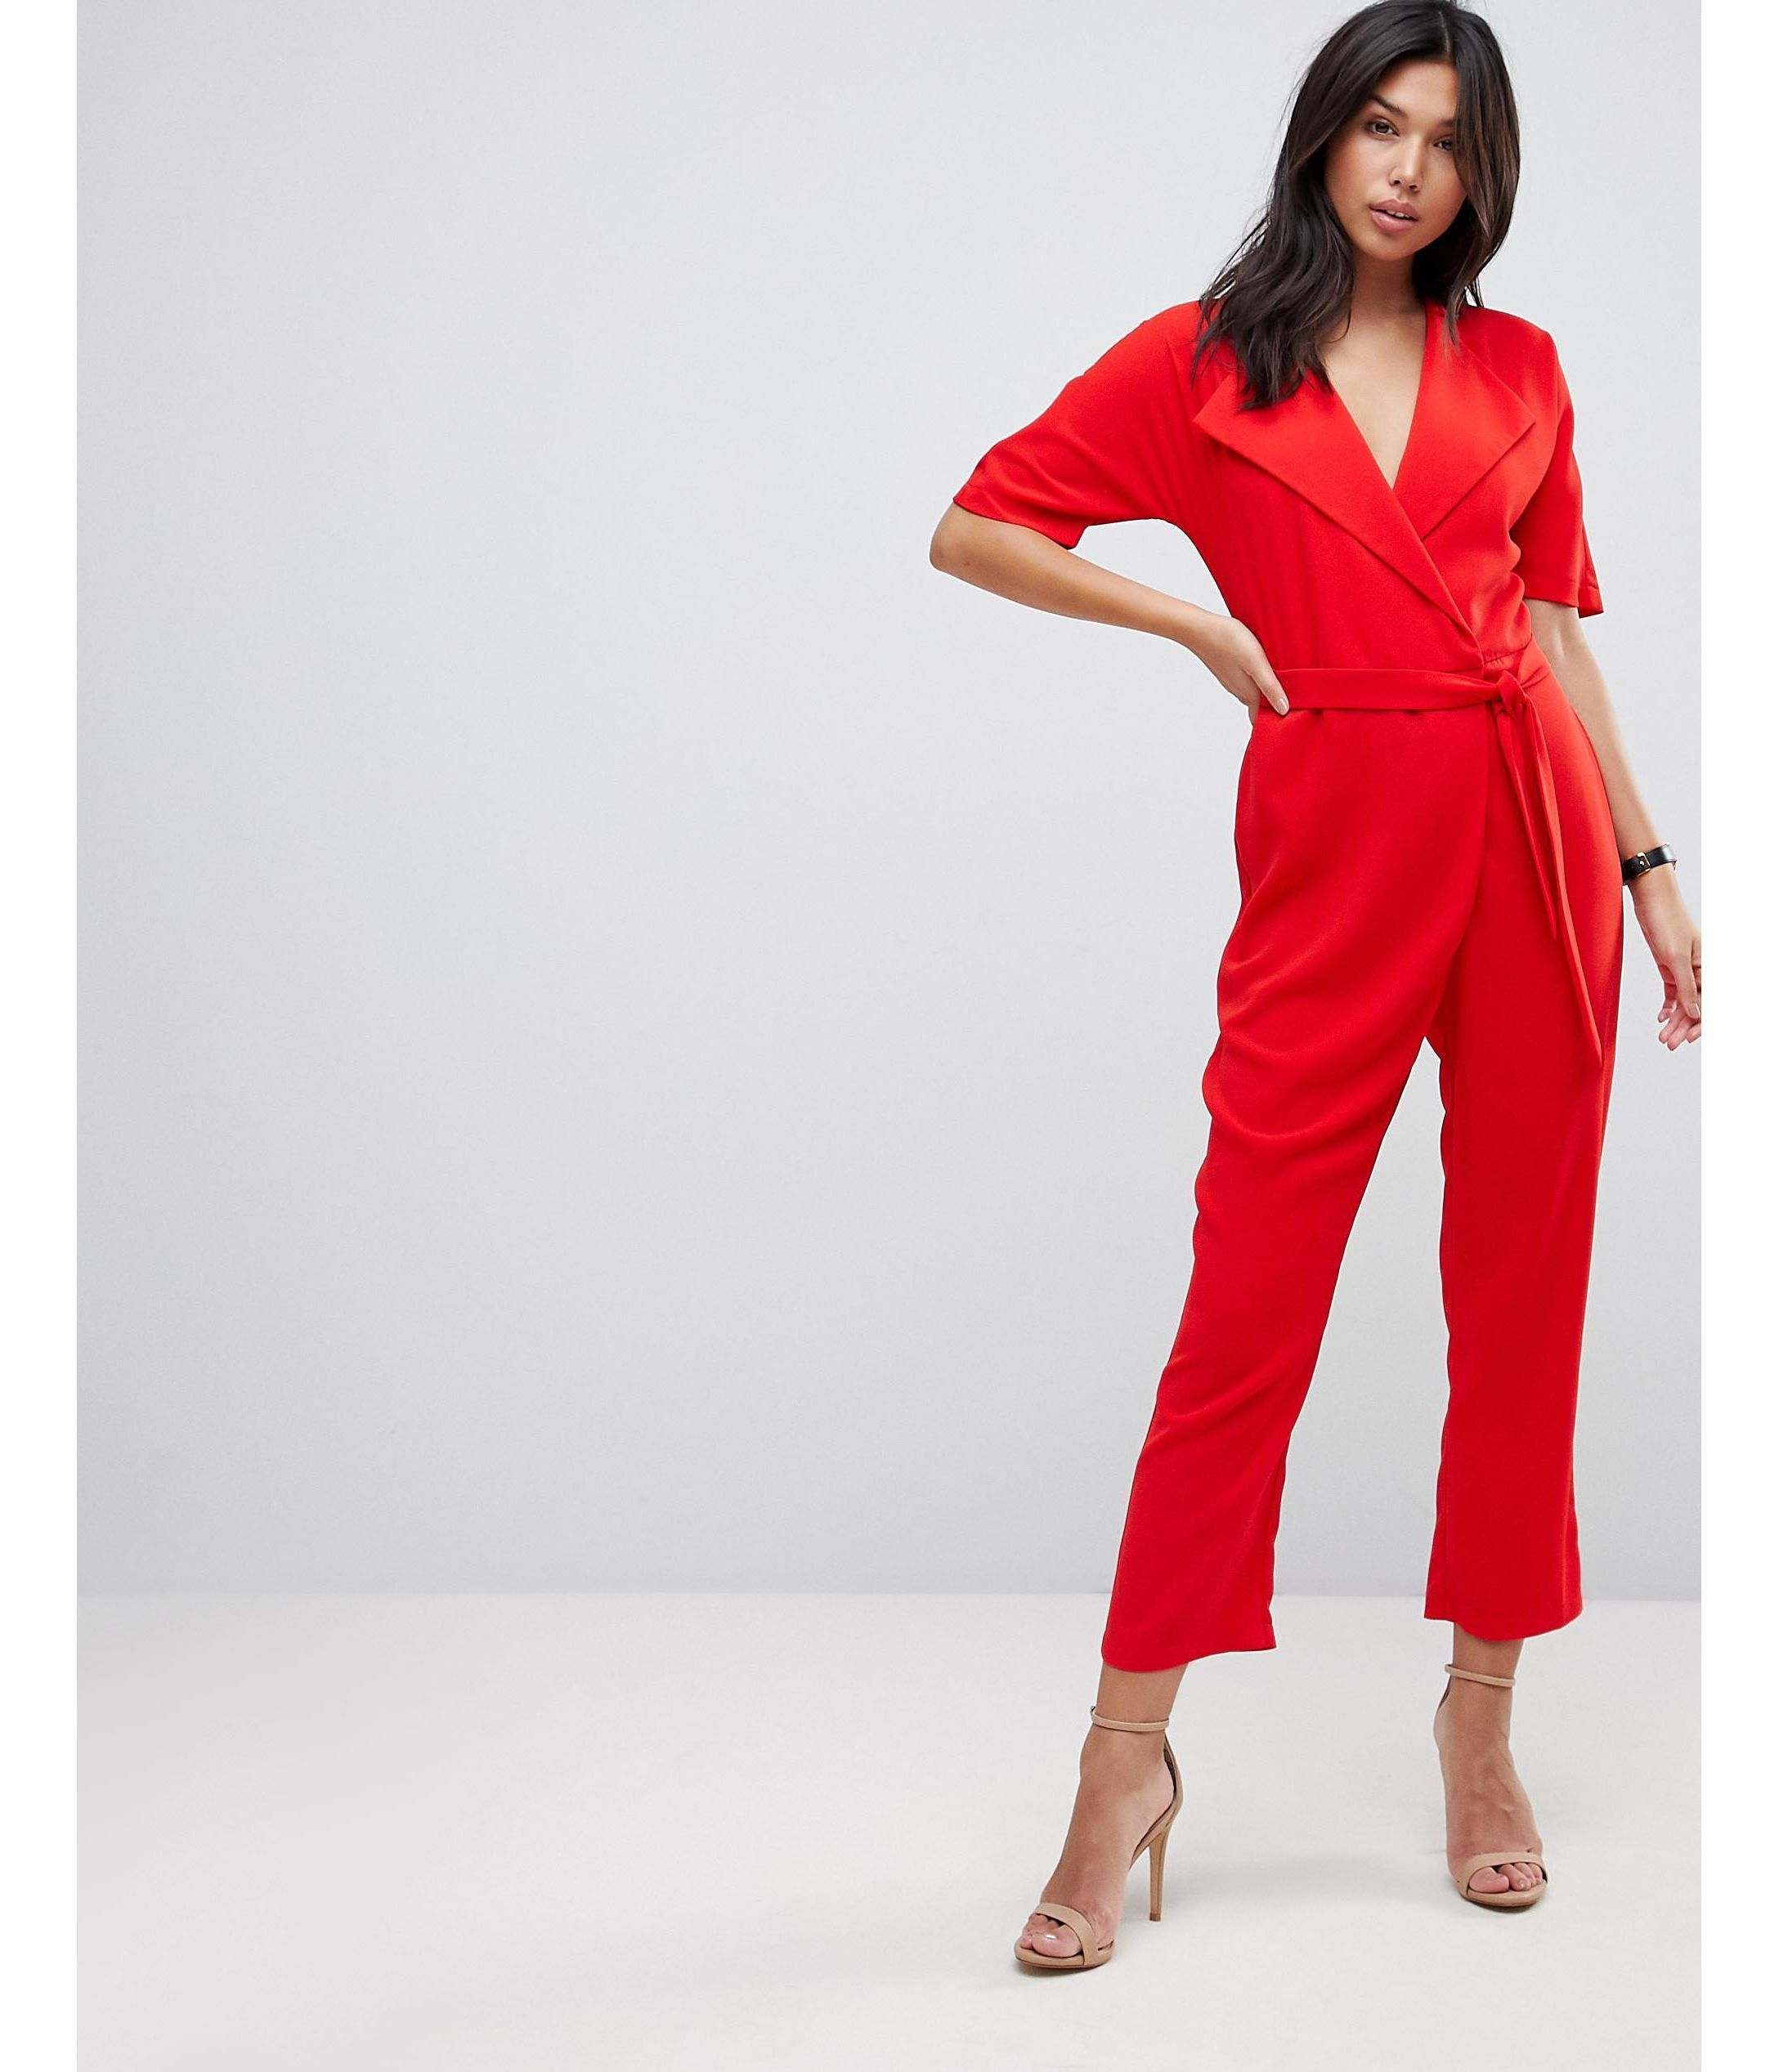 ★ASOS★ Wrap Jumpsuit  Self ベルト